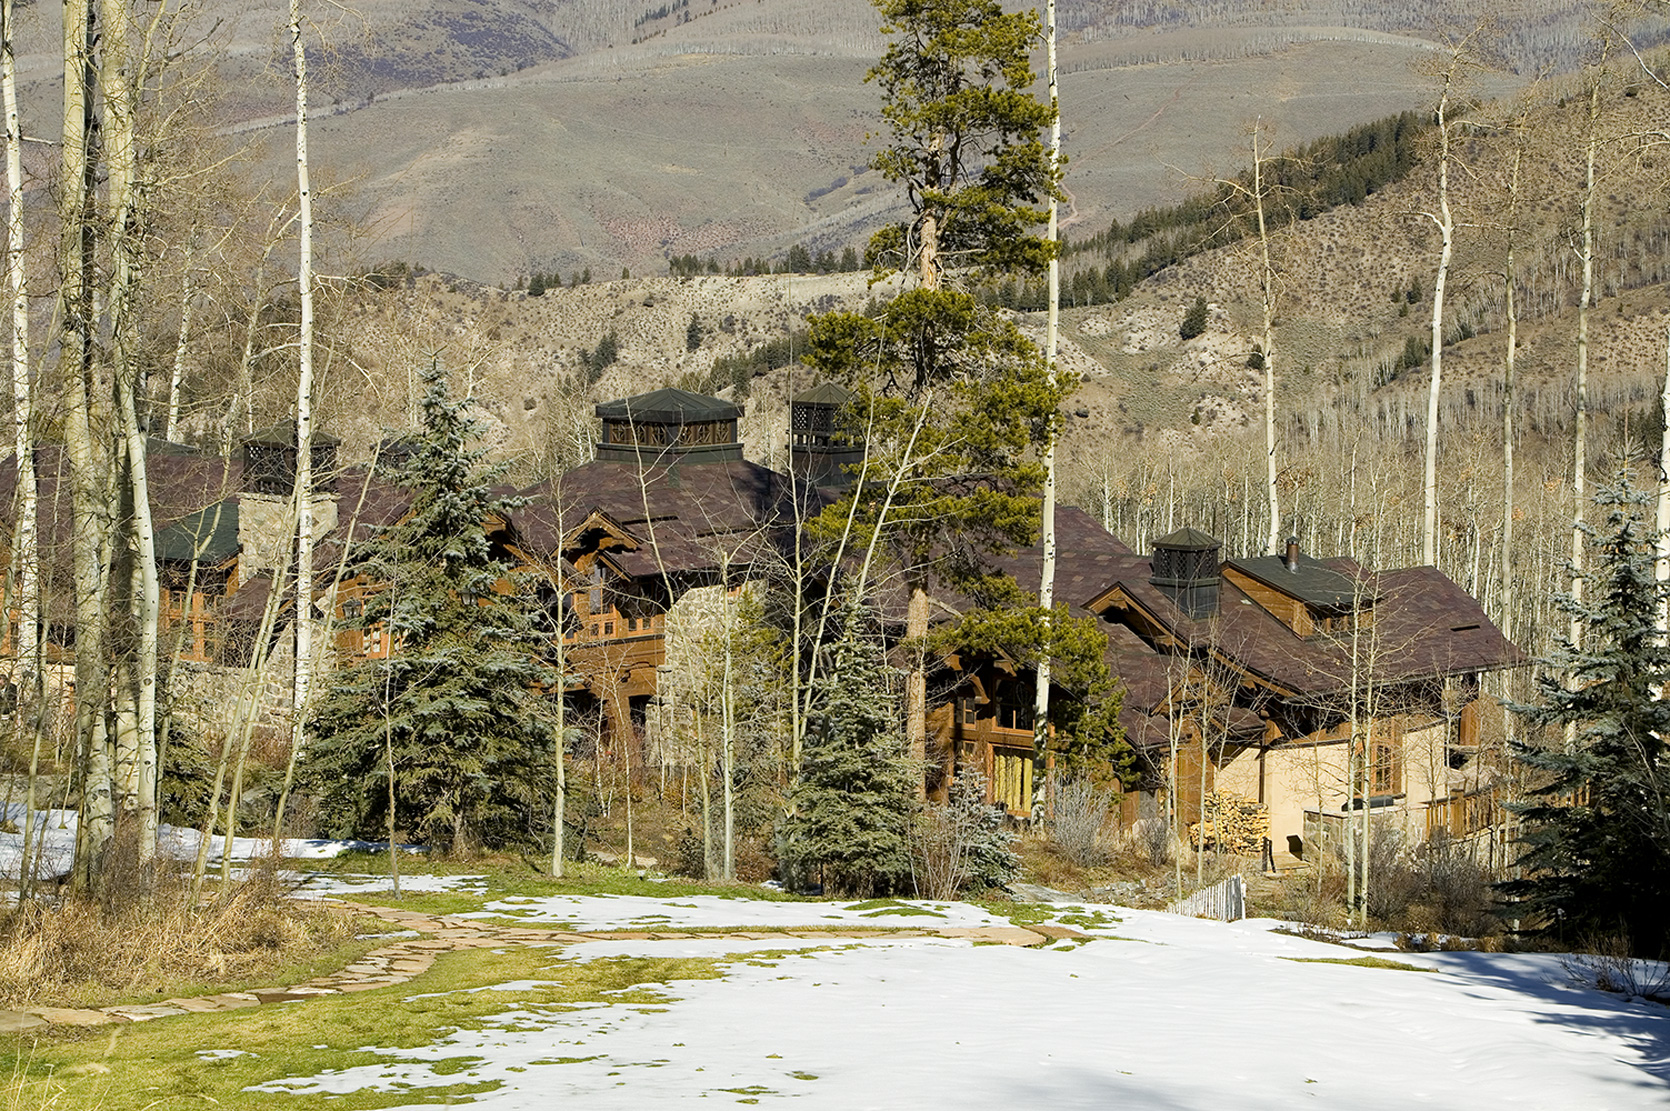 Strawberry Park, Beaver Creek, Colorado